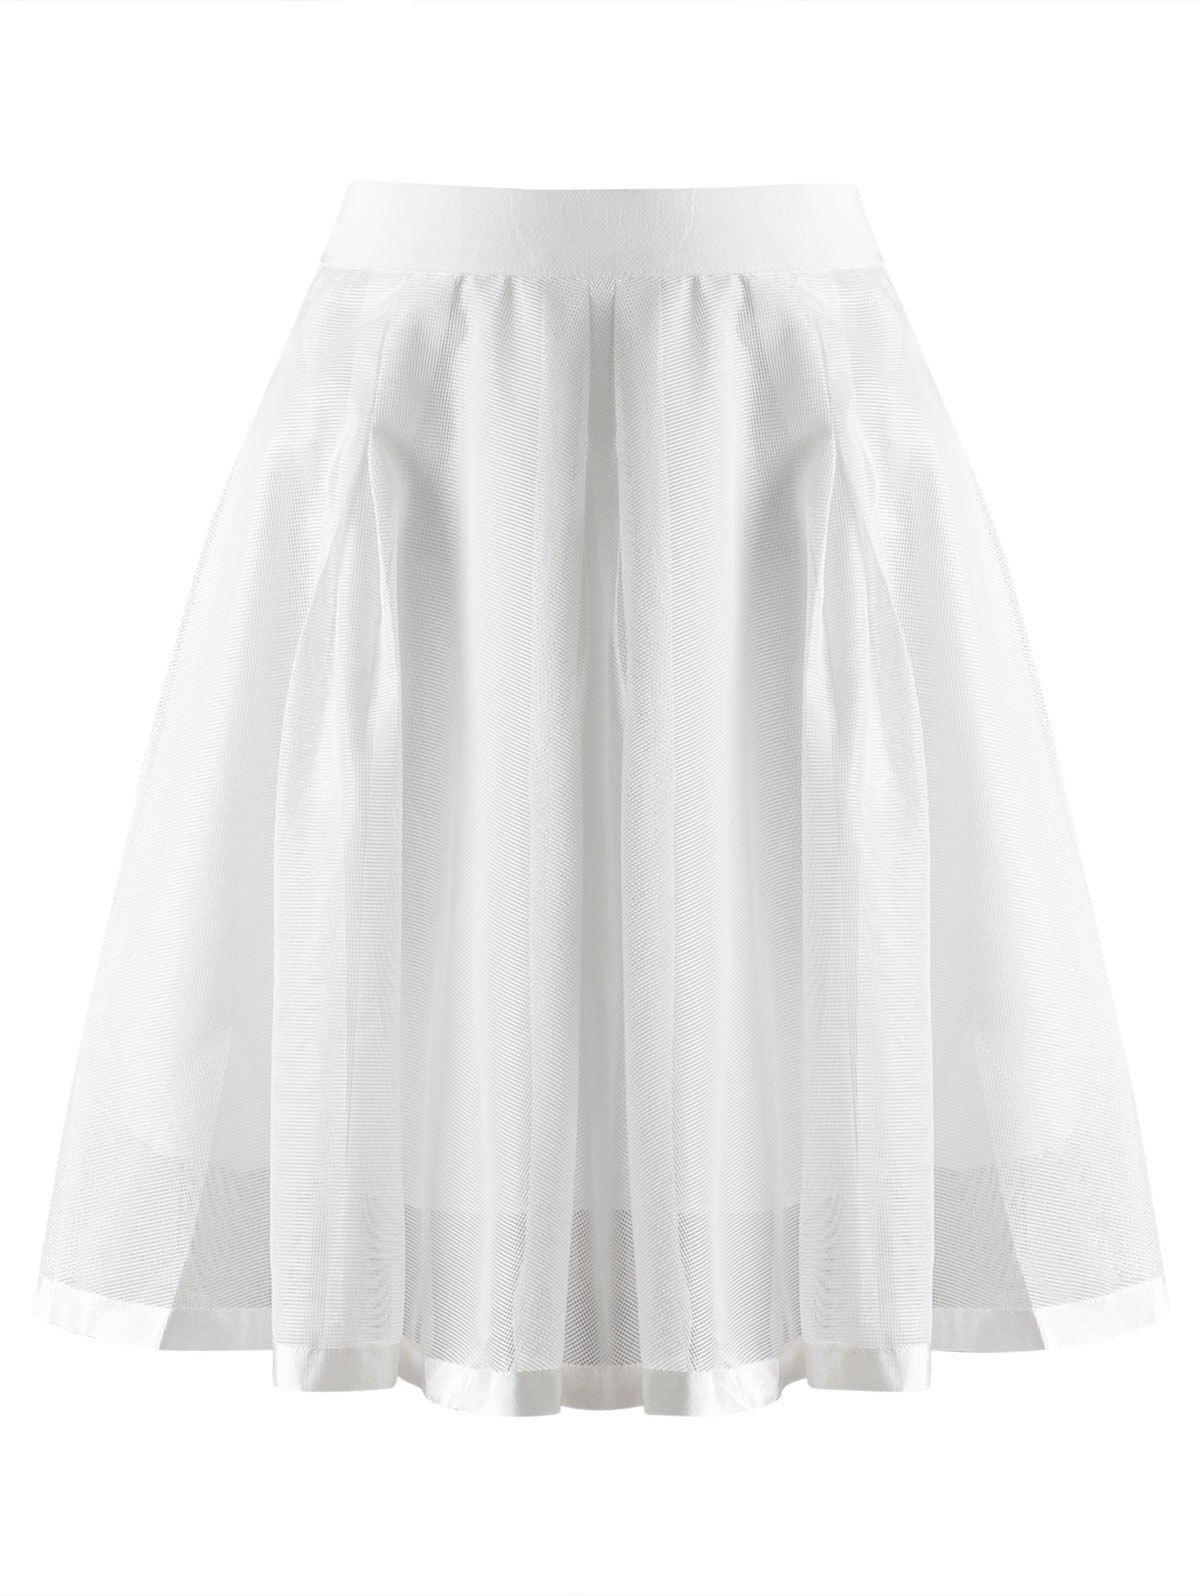 Stylish Women's Voile Solid Color Zipper Fly Bud Skirt - WHITE M